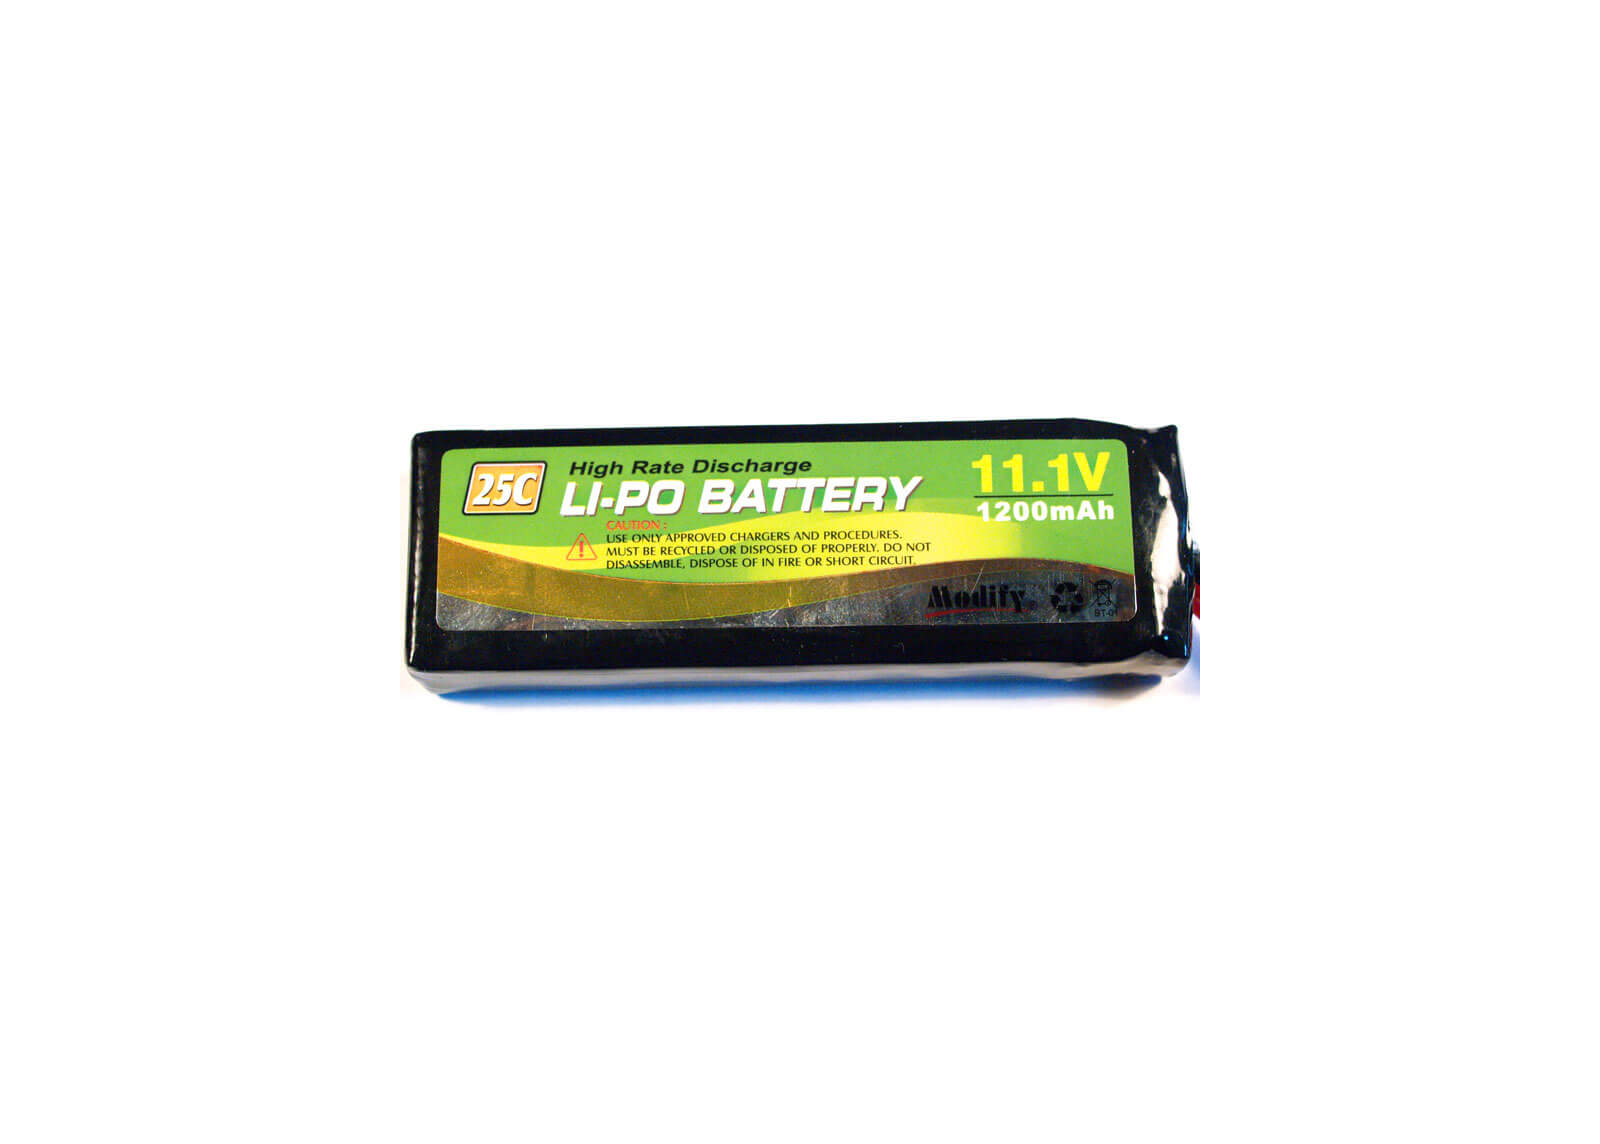 LiPo Airsoft Gun Battery Package 25C 11.1V 1200mAh-Modify Airsoft Accessories